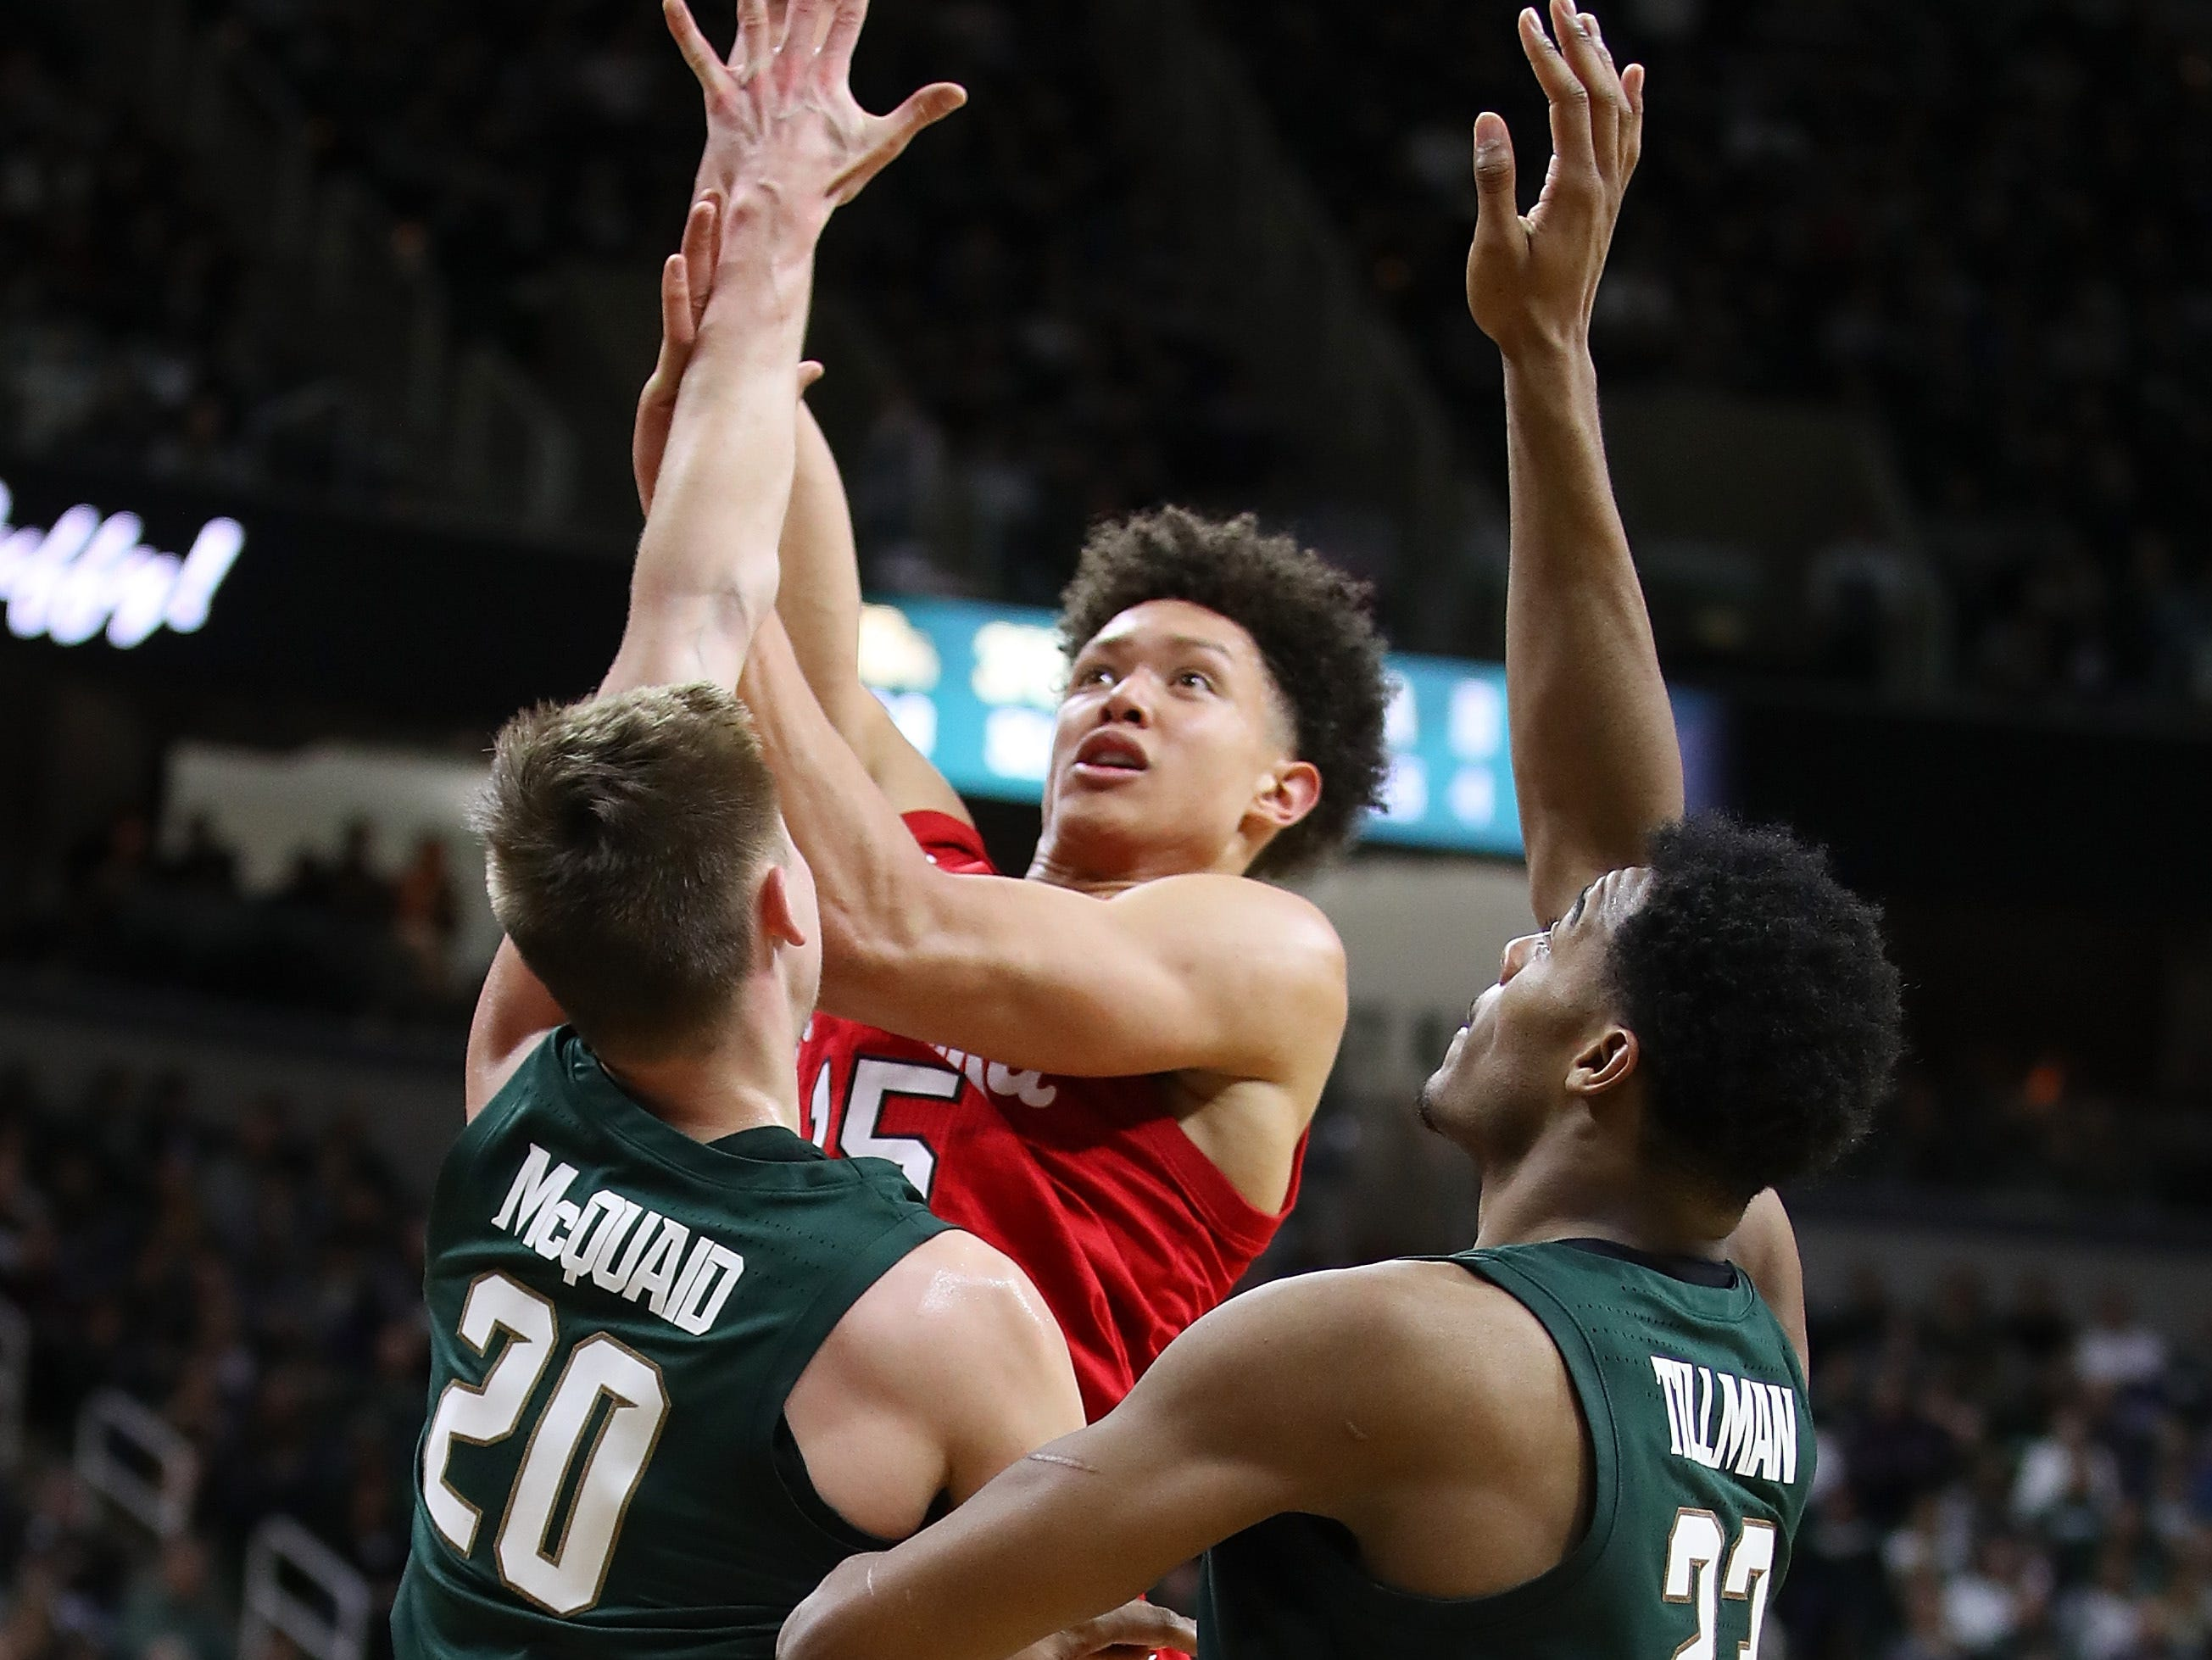 EAST LANSING, MICHIGAN - MARCH 05:  Isaiah Roby #15 of the Nebraska Cornhuskers takes a second half shot over Matt McQuaid #20 of the Michigan State Spartans at Breslin Center on March 05, 2019 in East Lansing, Michigan. Michigan State won the game 91-76. (Photo by Gregory Shamus/Getty Images)